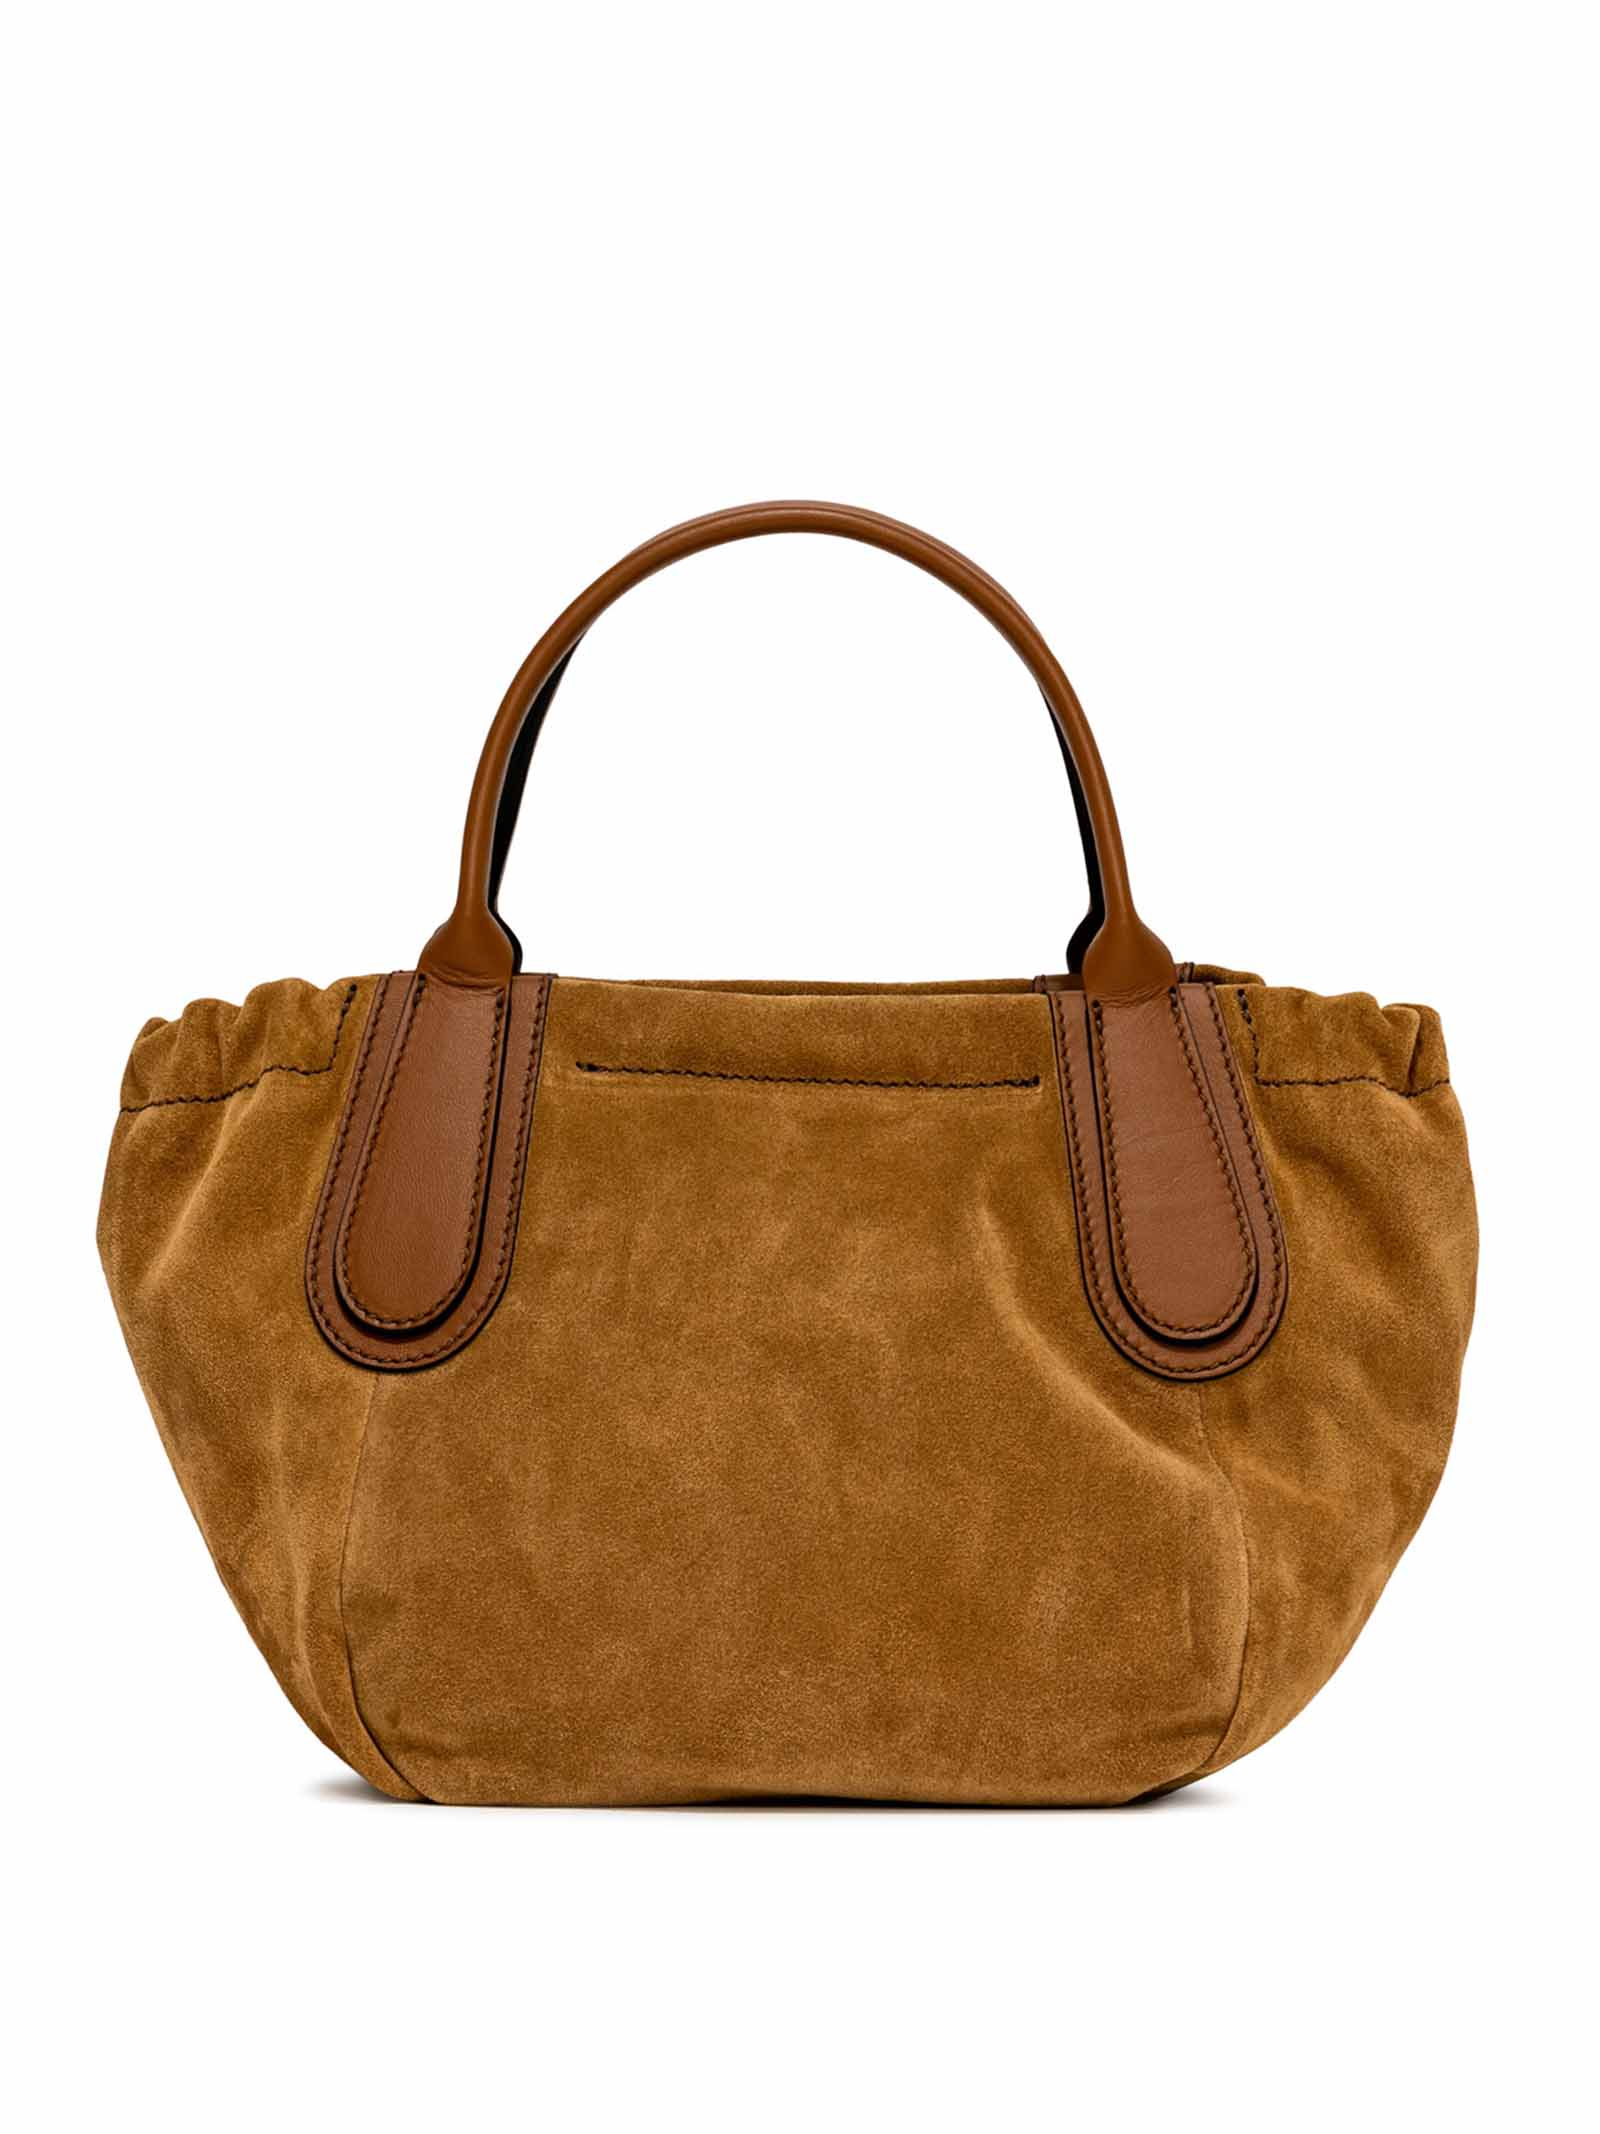 Women's Shoulder Bag Mini Aria in Suede Leather with Double Matching Leather Handles and Adjustable and Detachable Tinted Leather Shoulder Strap Gianni Chiarini   Bags and backpacks   BS93998217